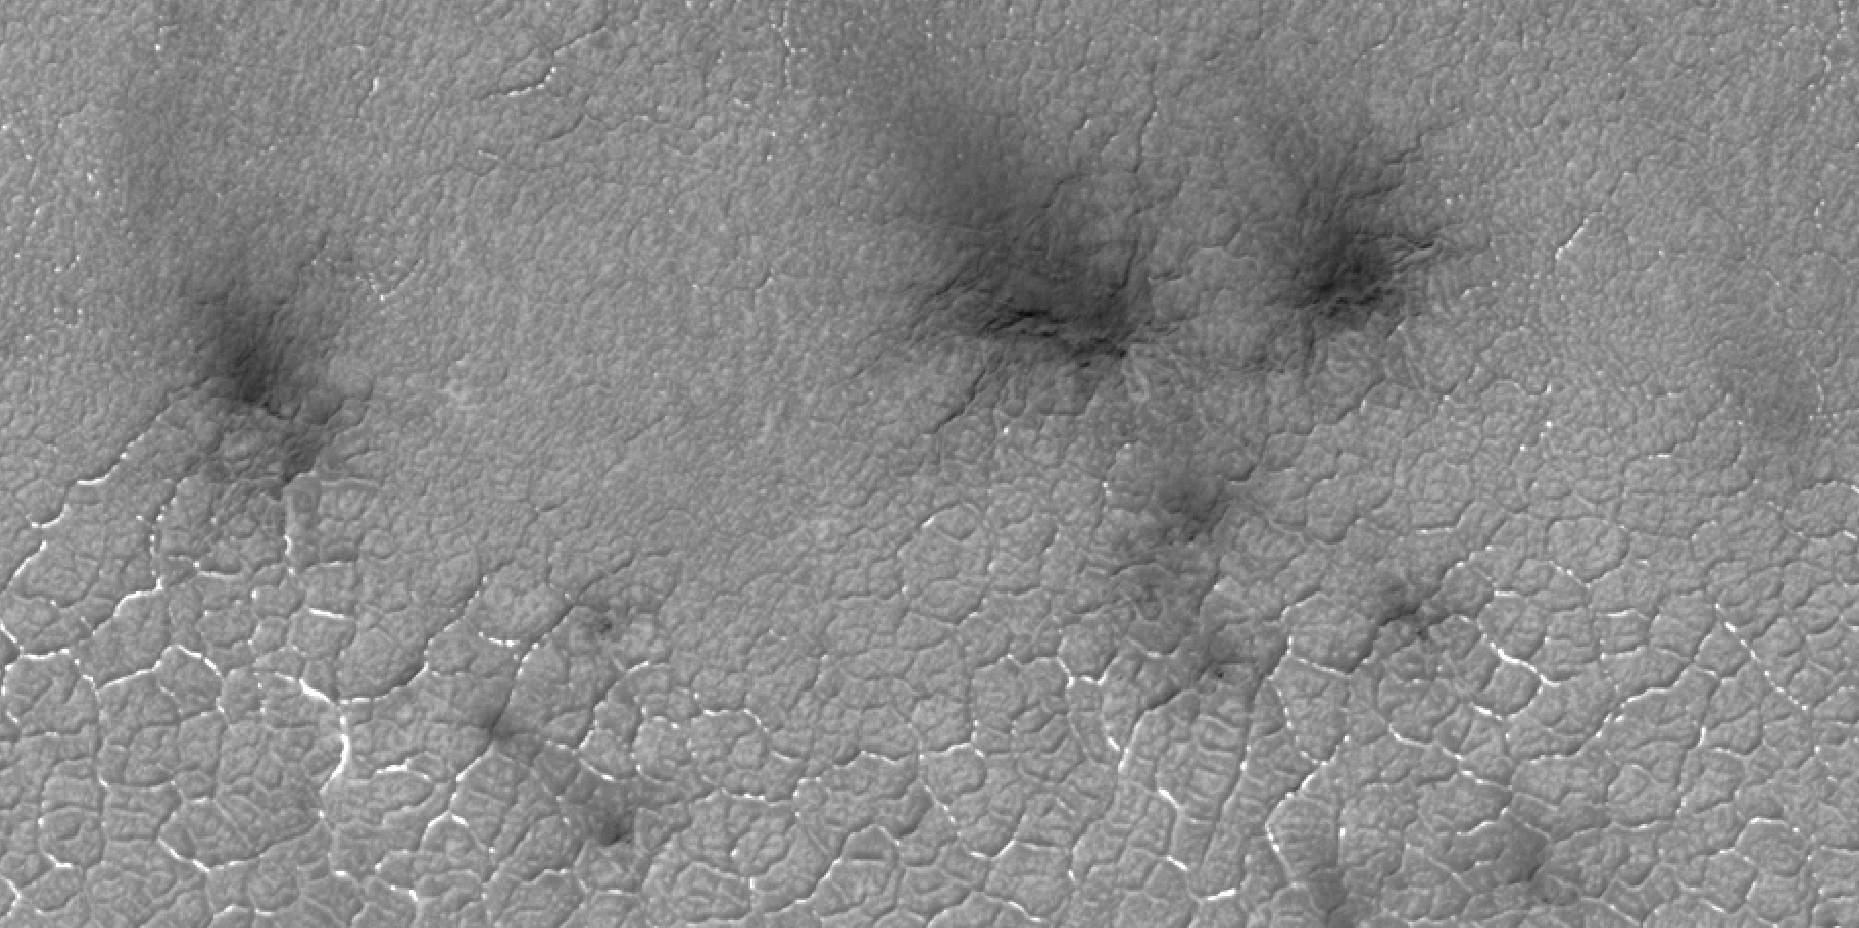 Close view of spider formations, as seen by HiRISE under HiWish program Polygon-shaped channels are also visible.